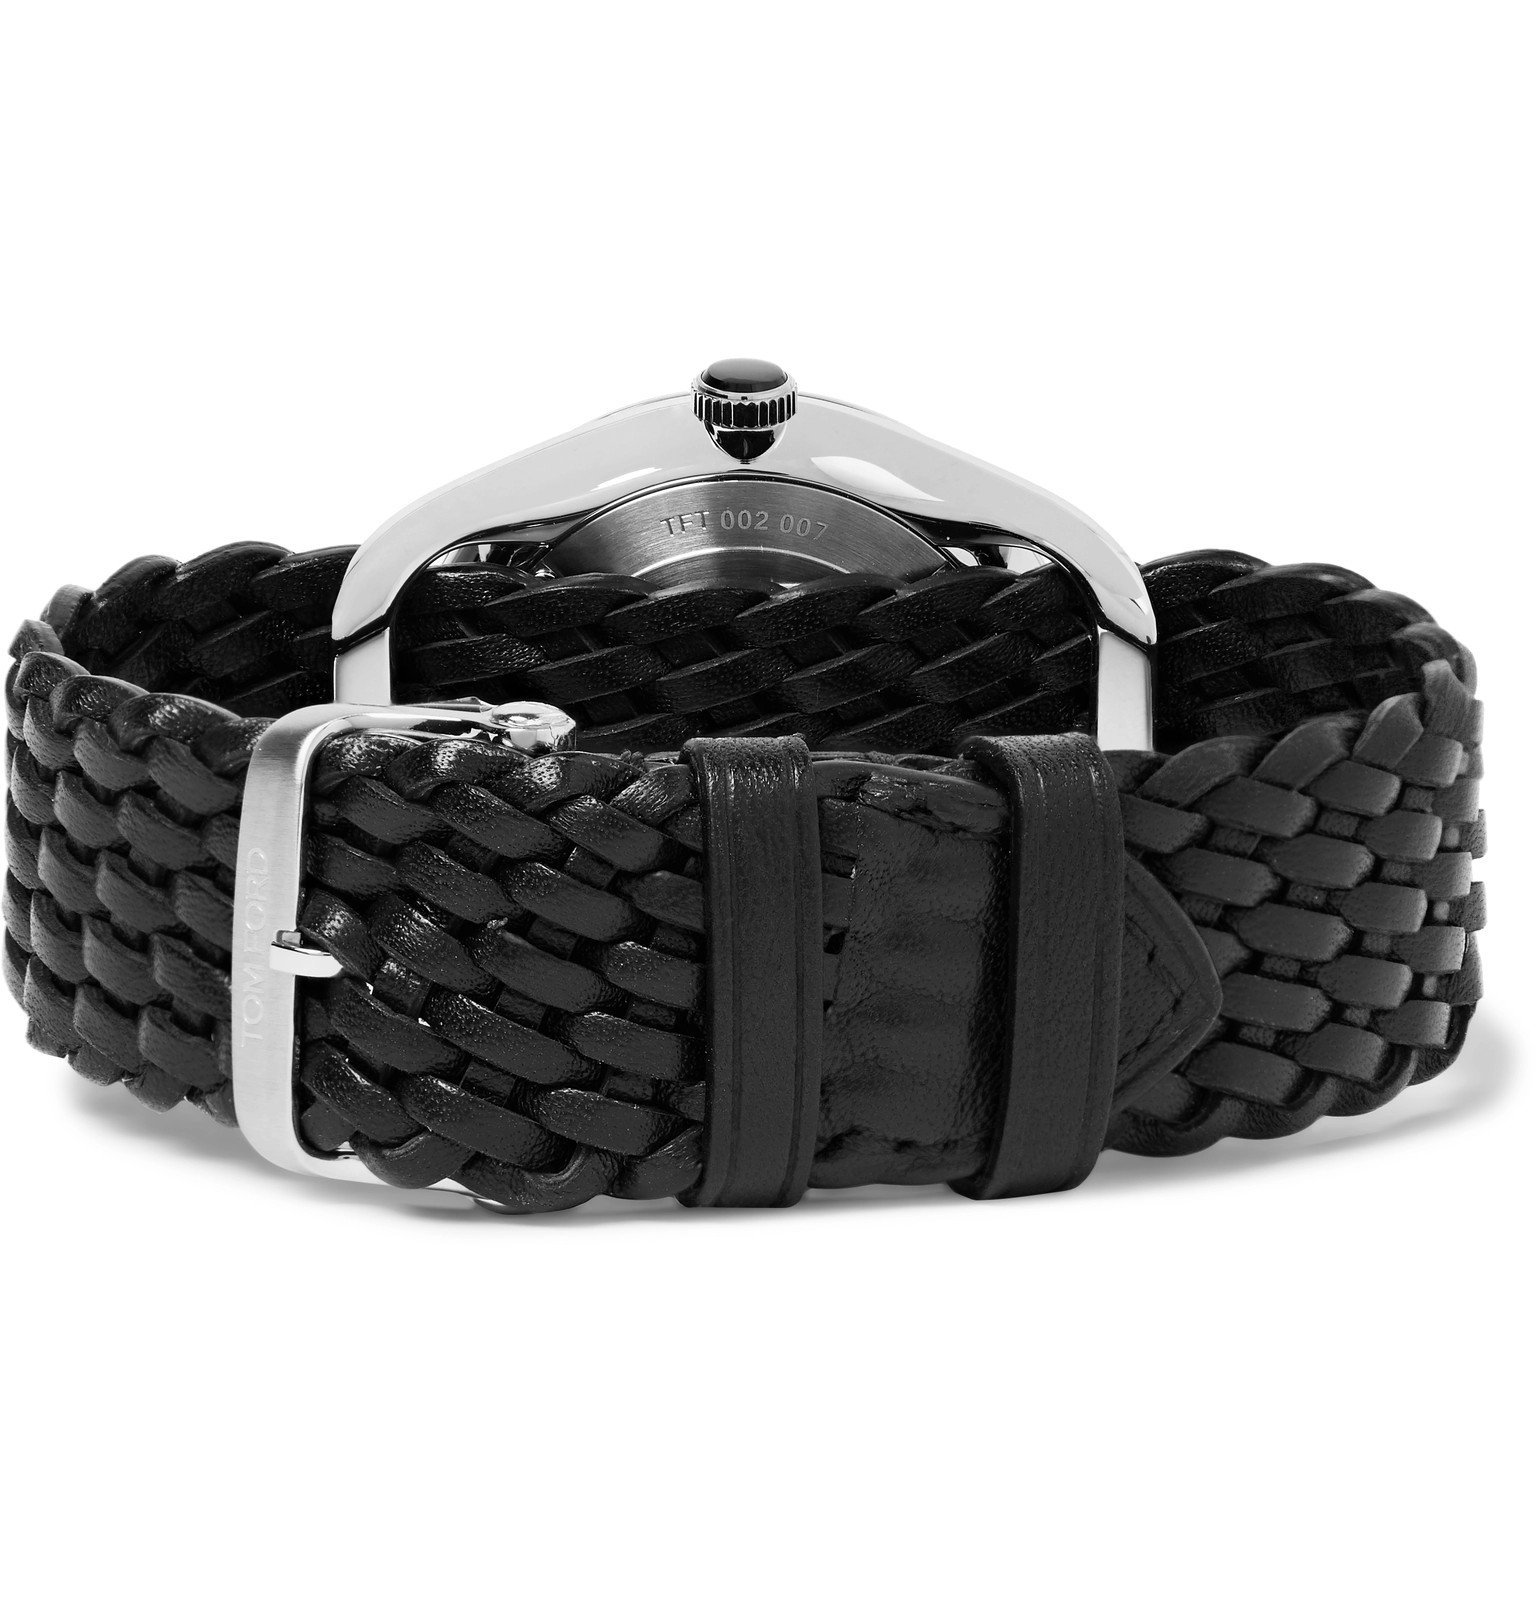 Tom Ford Timepieces - 002 38mm Stainless Steel and Braided Leather Watch - Black